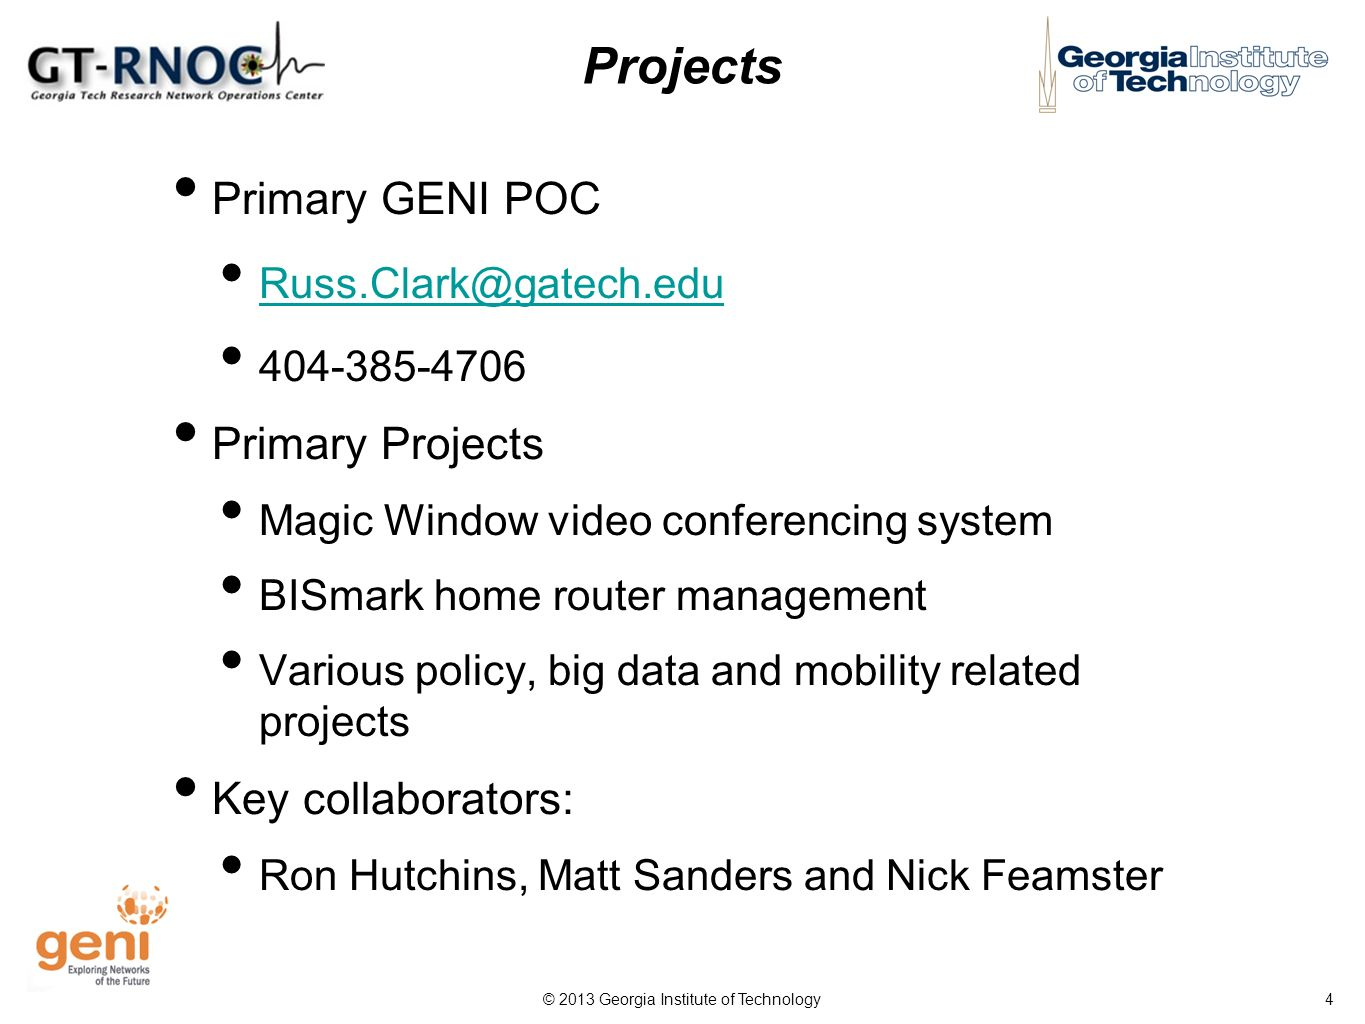 © 2013 Georgia Institute of Technology 4 Projects Primary GENI POC Russ.Clark@gatech.edu 404-385-4706 Primary Projects Magic Window video conferencing system BISmark home router management Various policy, big data and mobility related projects Key collaborators: Ron Hutchins, Matt Sanders and Nick Feamster